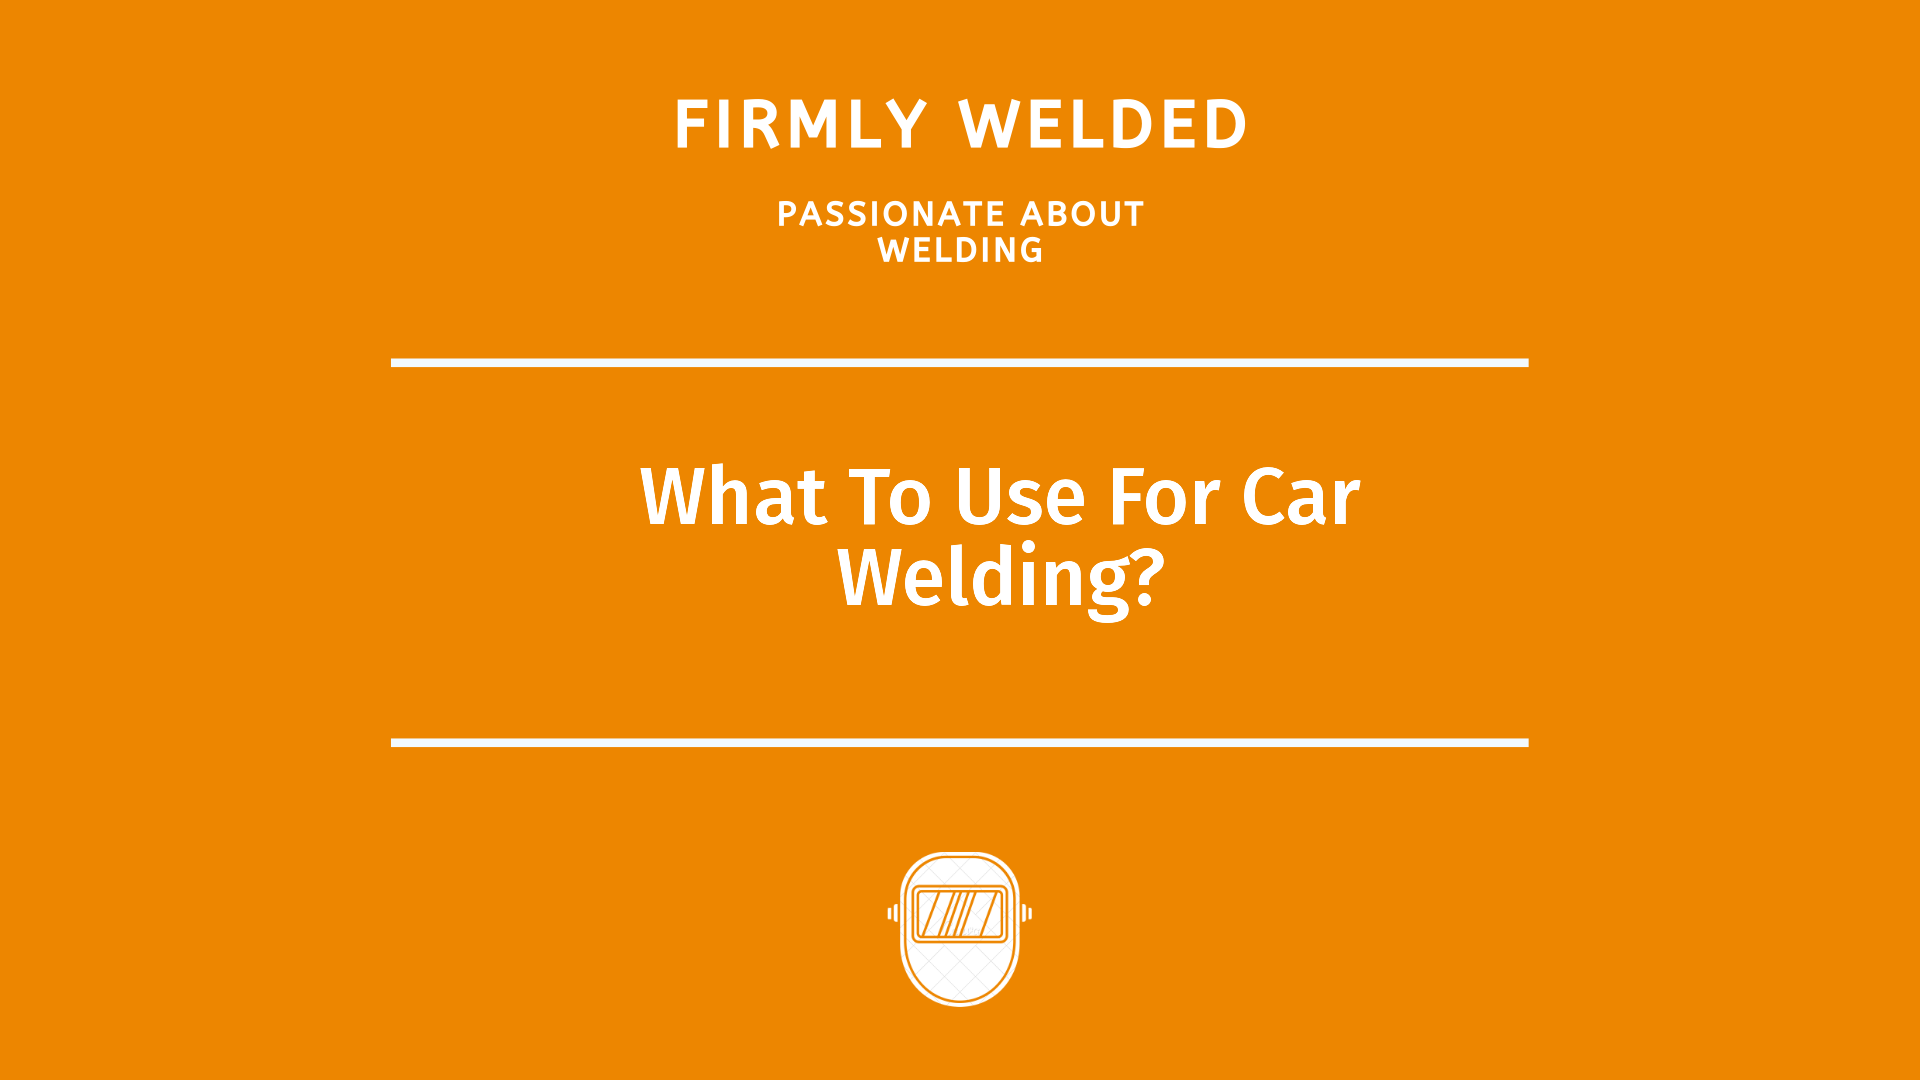 What To Use For Car Welding?